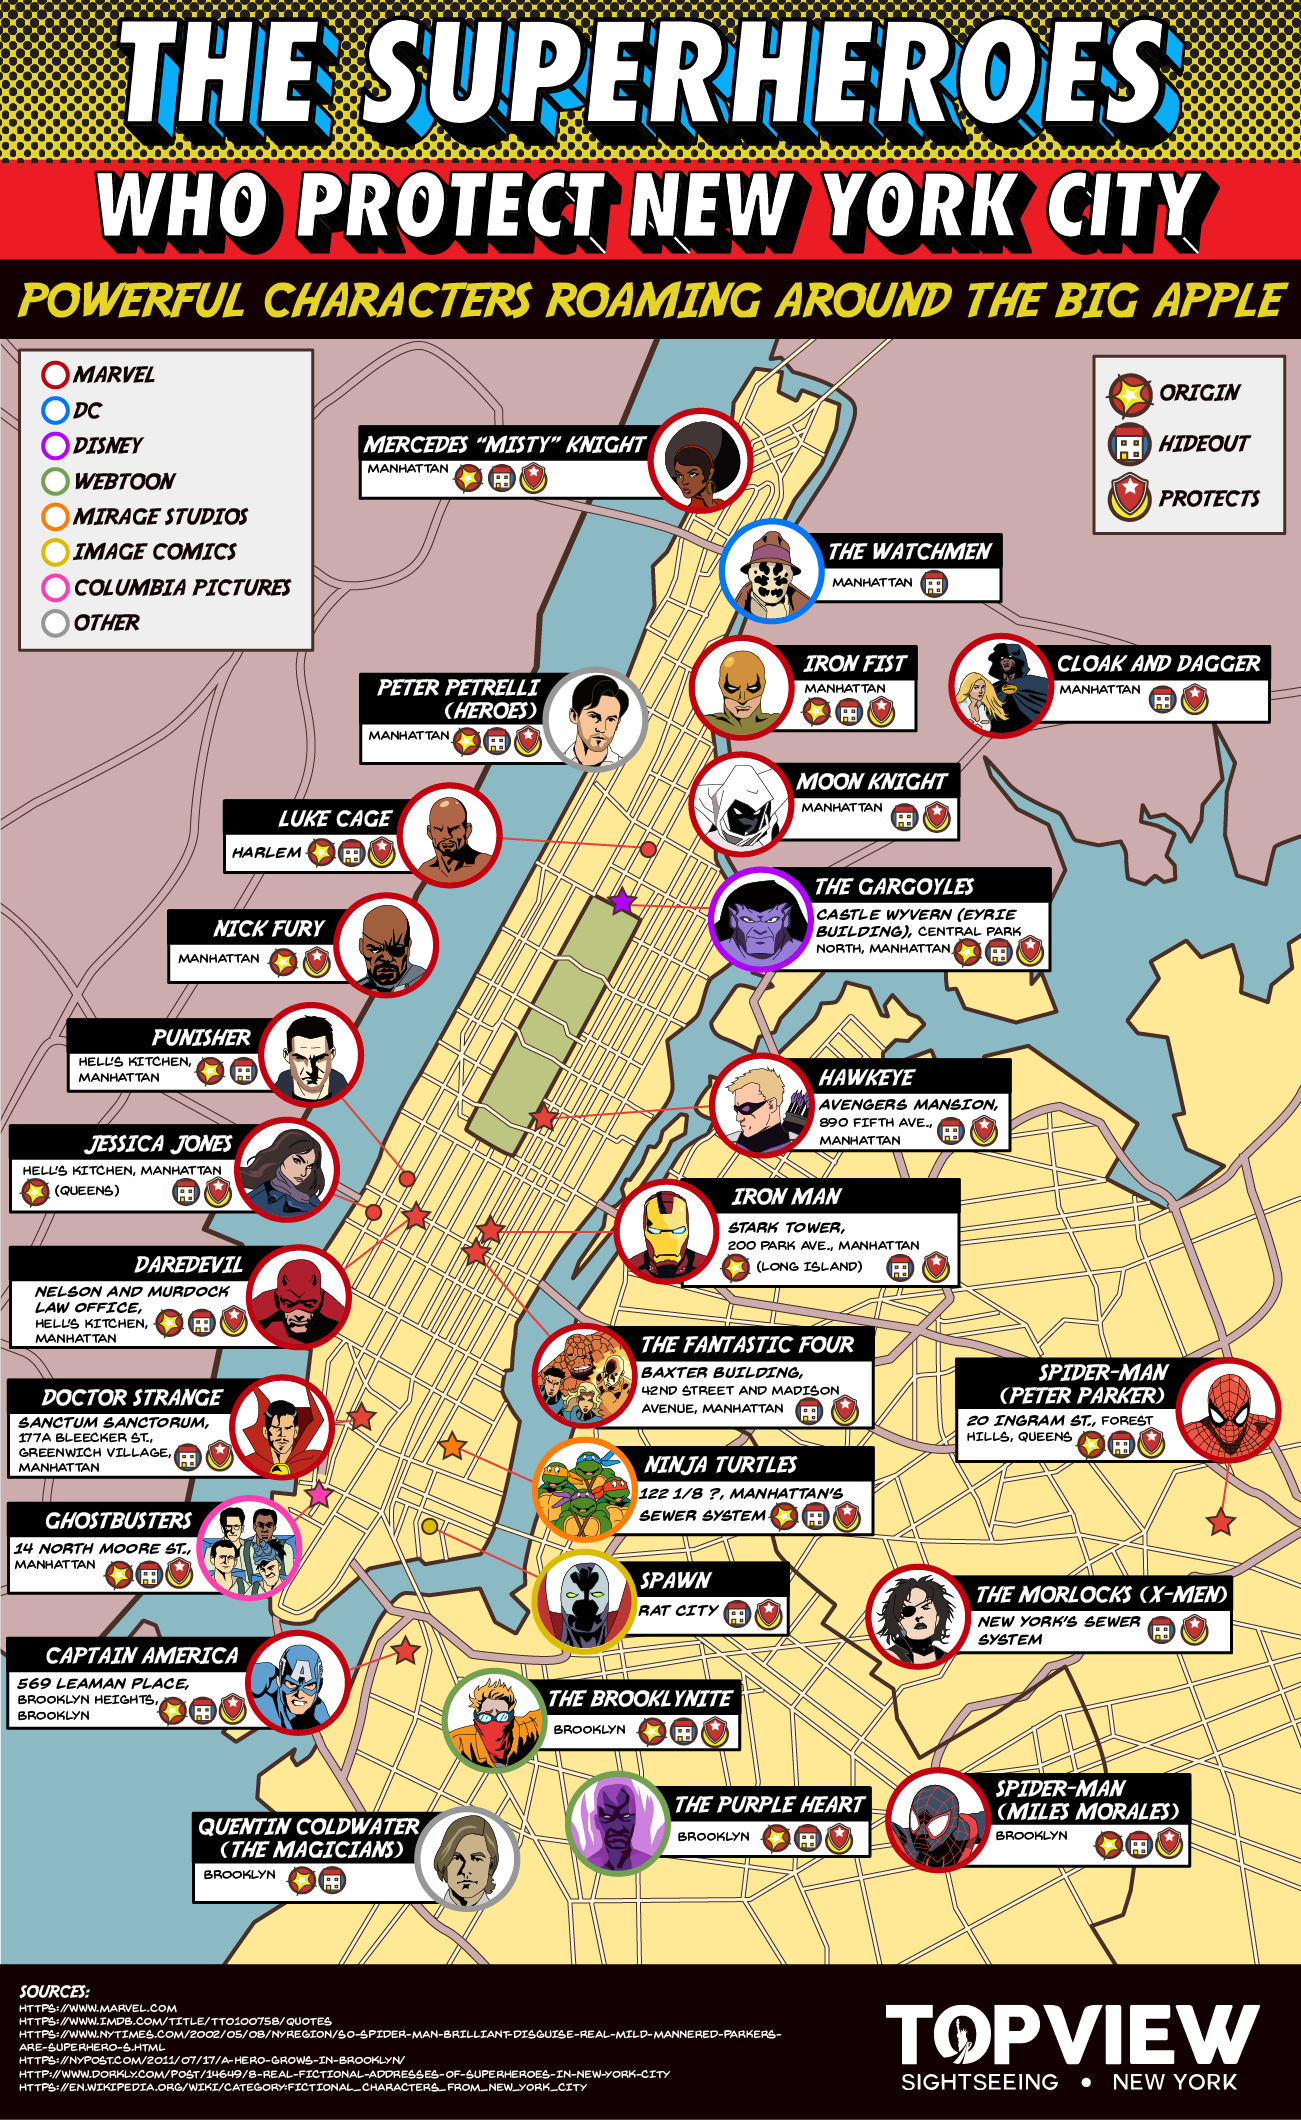 Mapa de Nova York e seus super-herois (Top View Sightseeing)